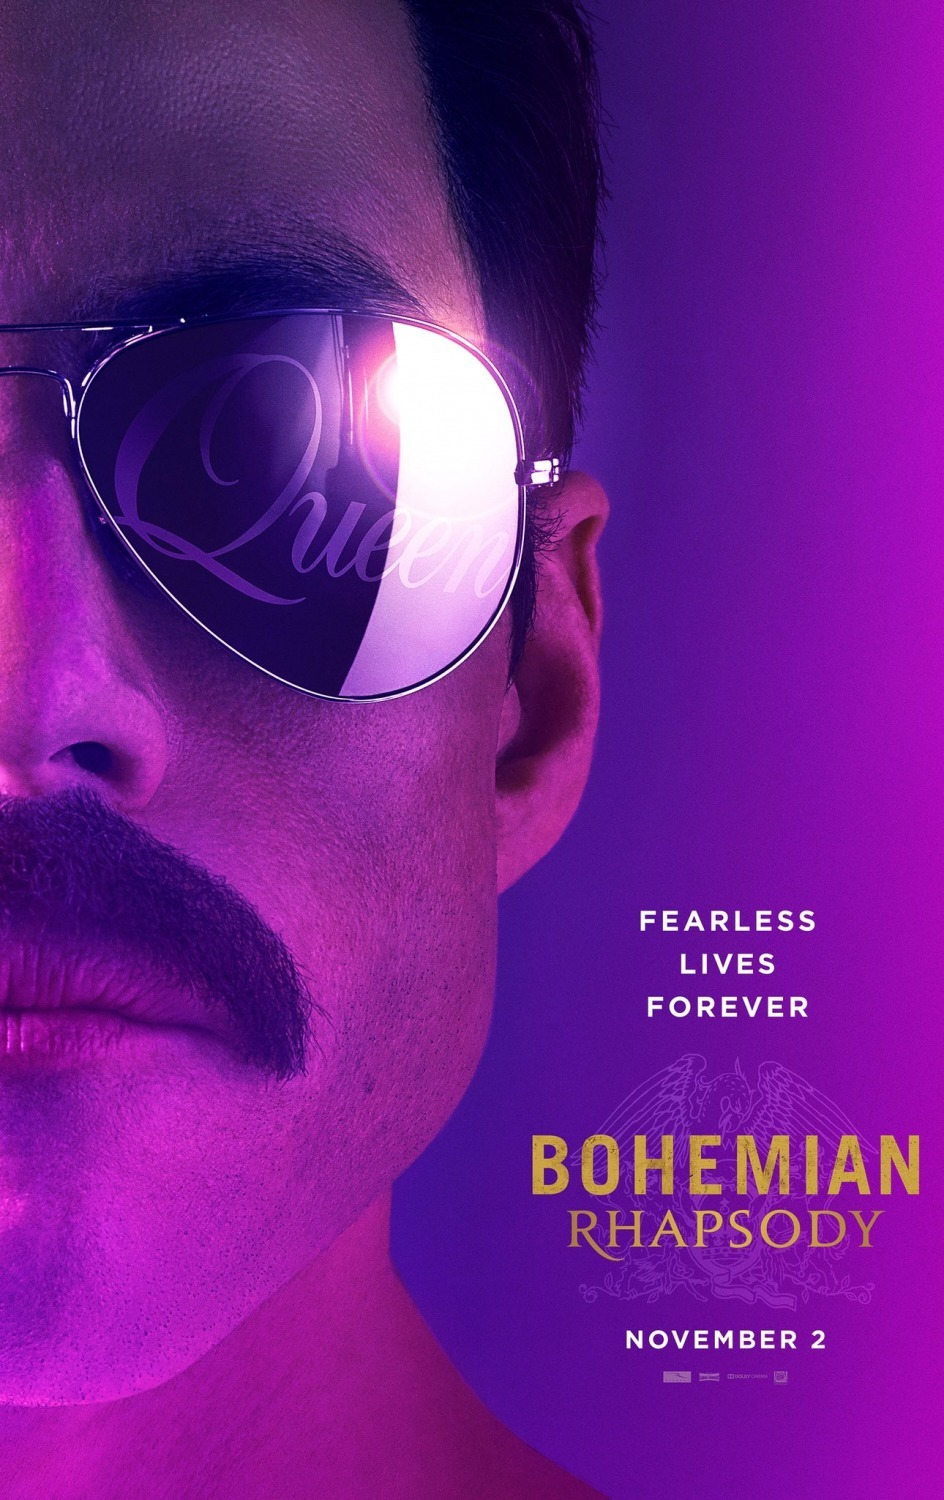 The film stars Rami Malek as Freddie Mercury.